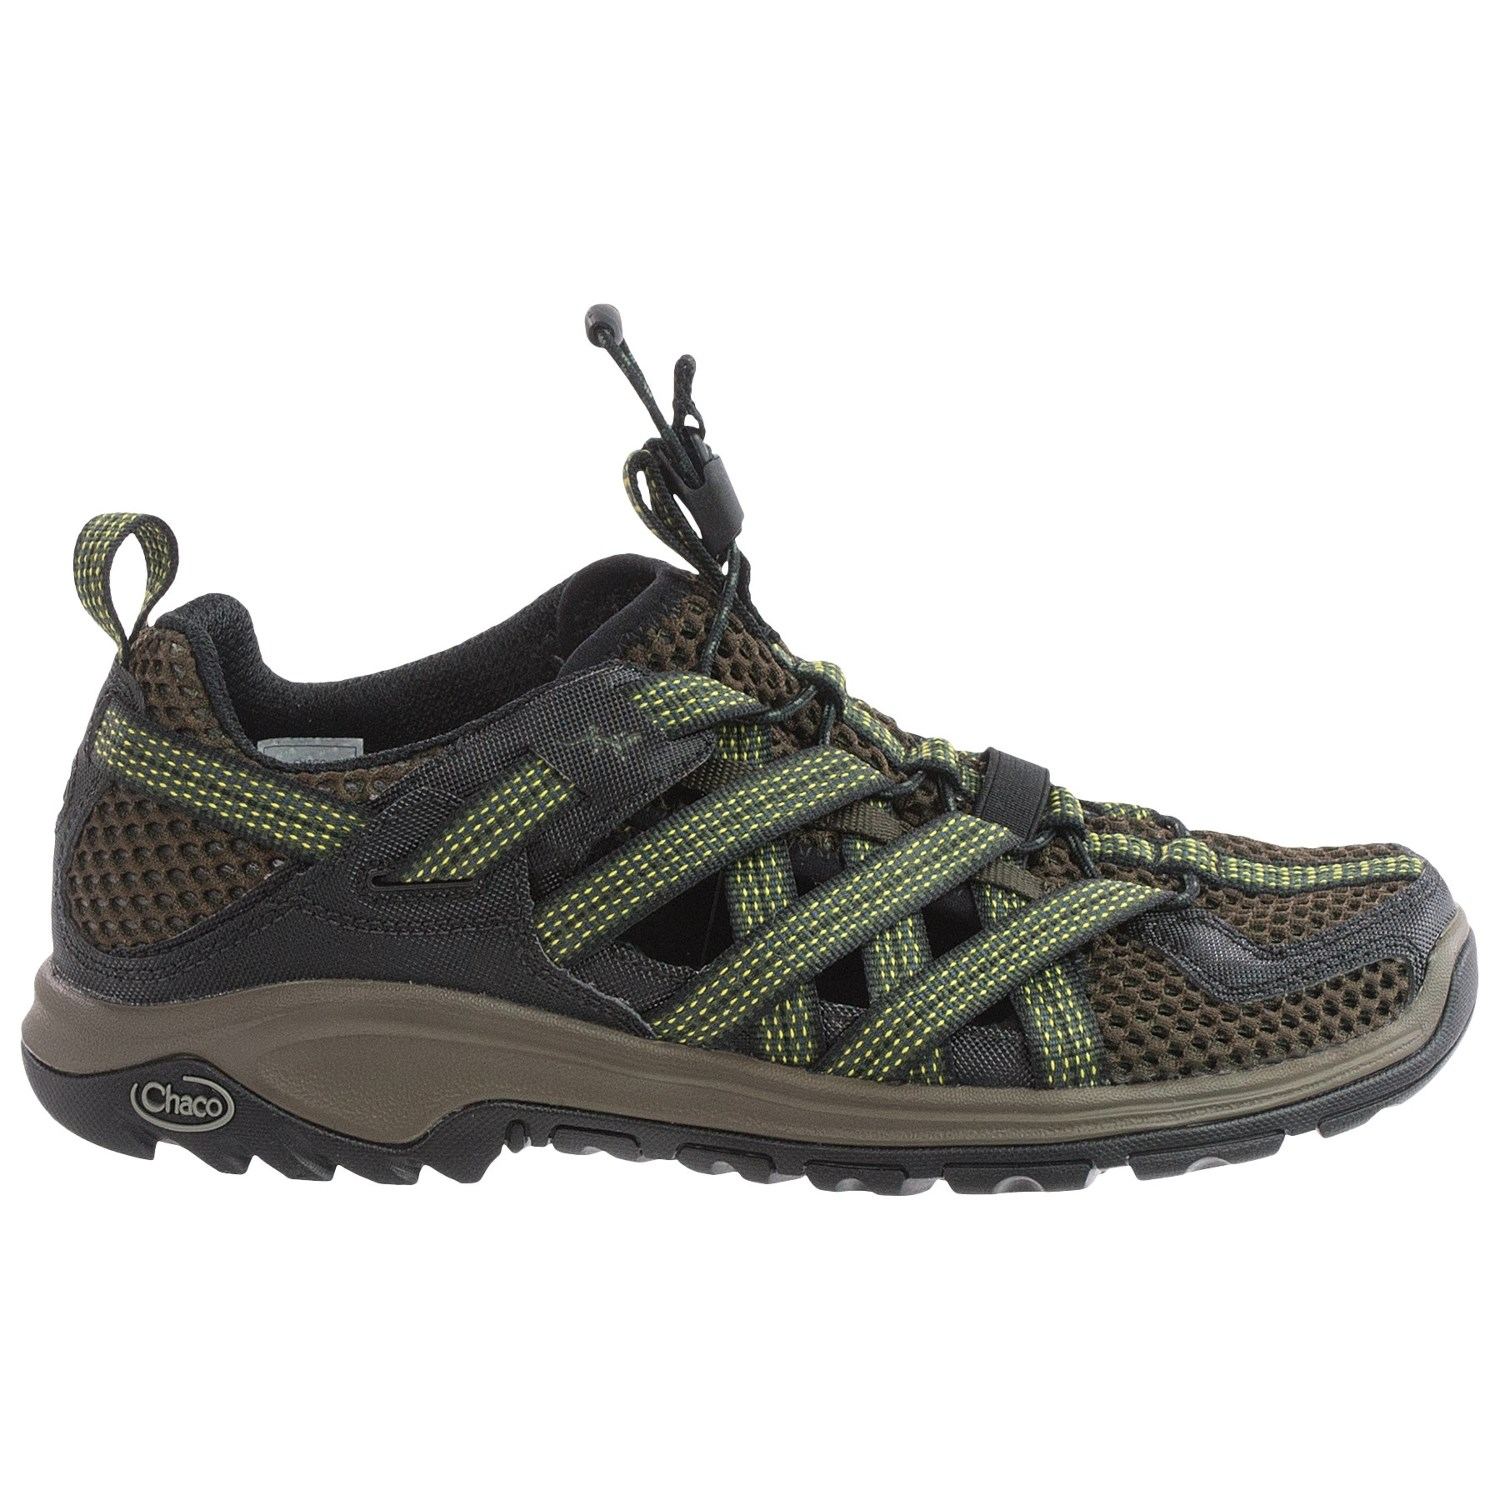 Chaco OutCross Evo 1 Water Shoes (For Men) - Save 45%